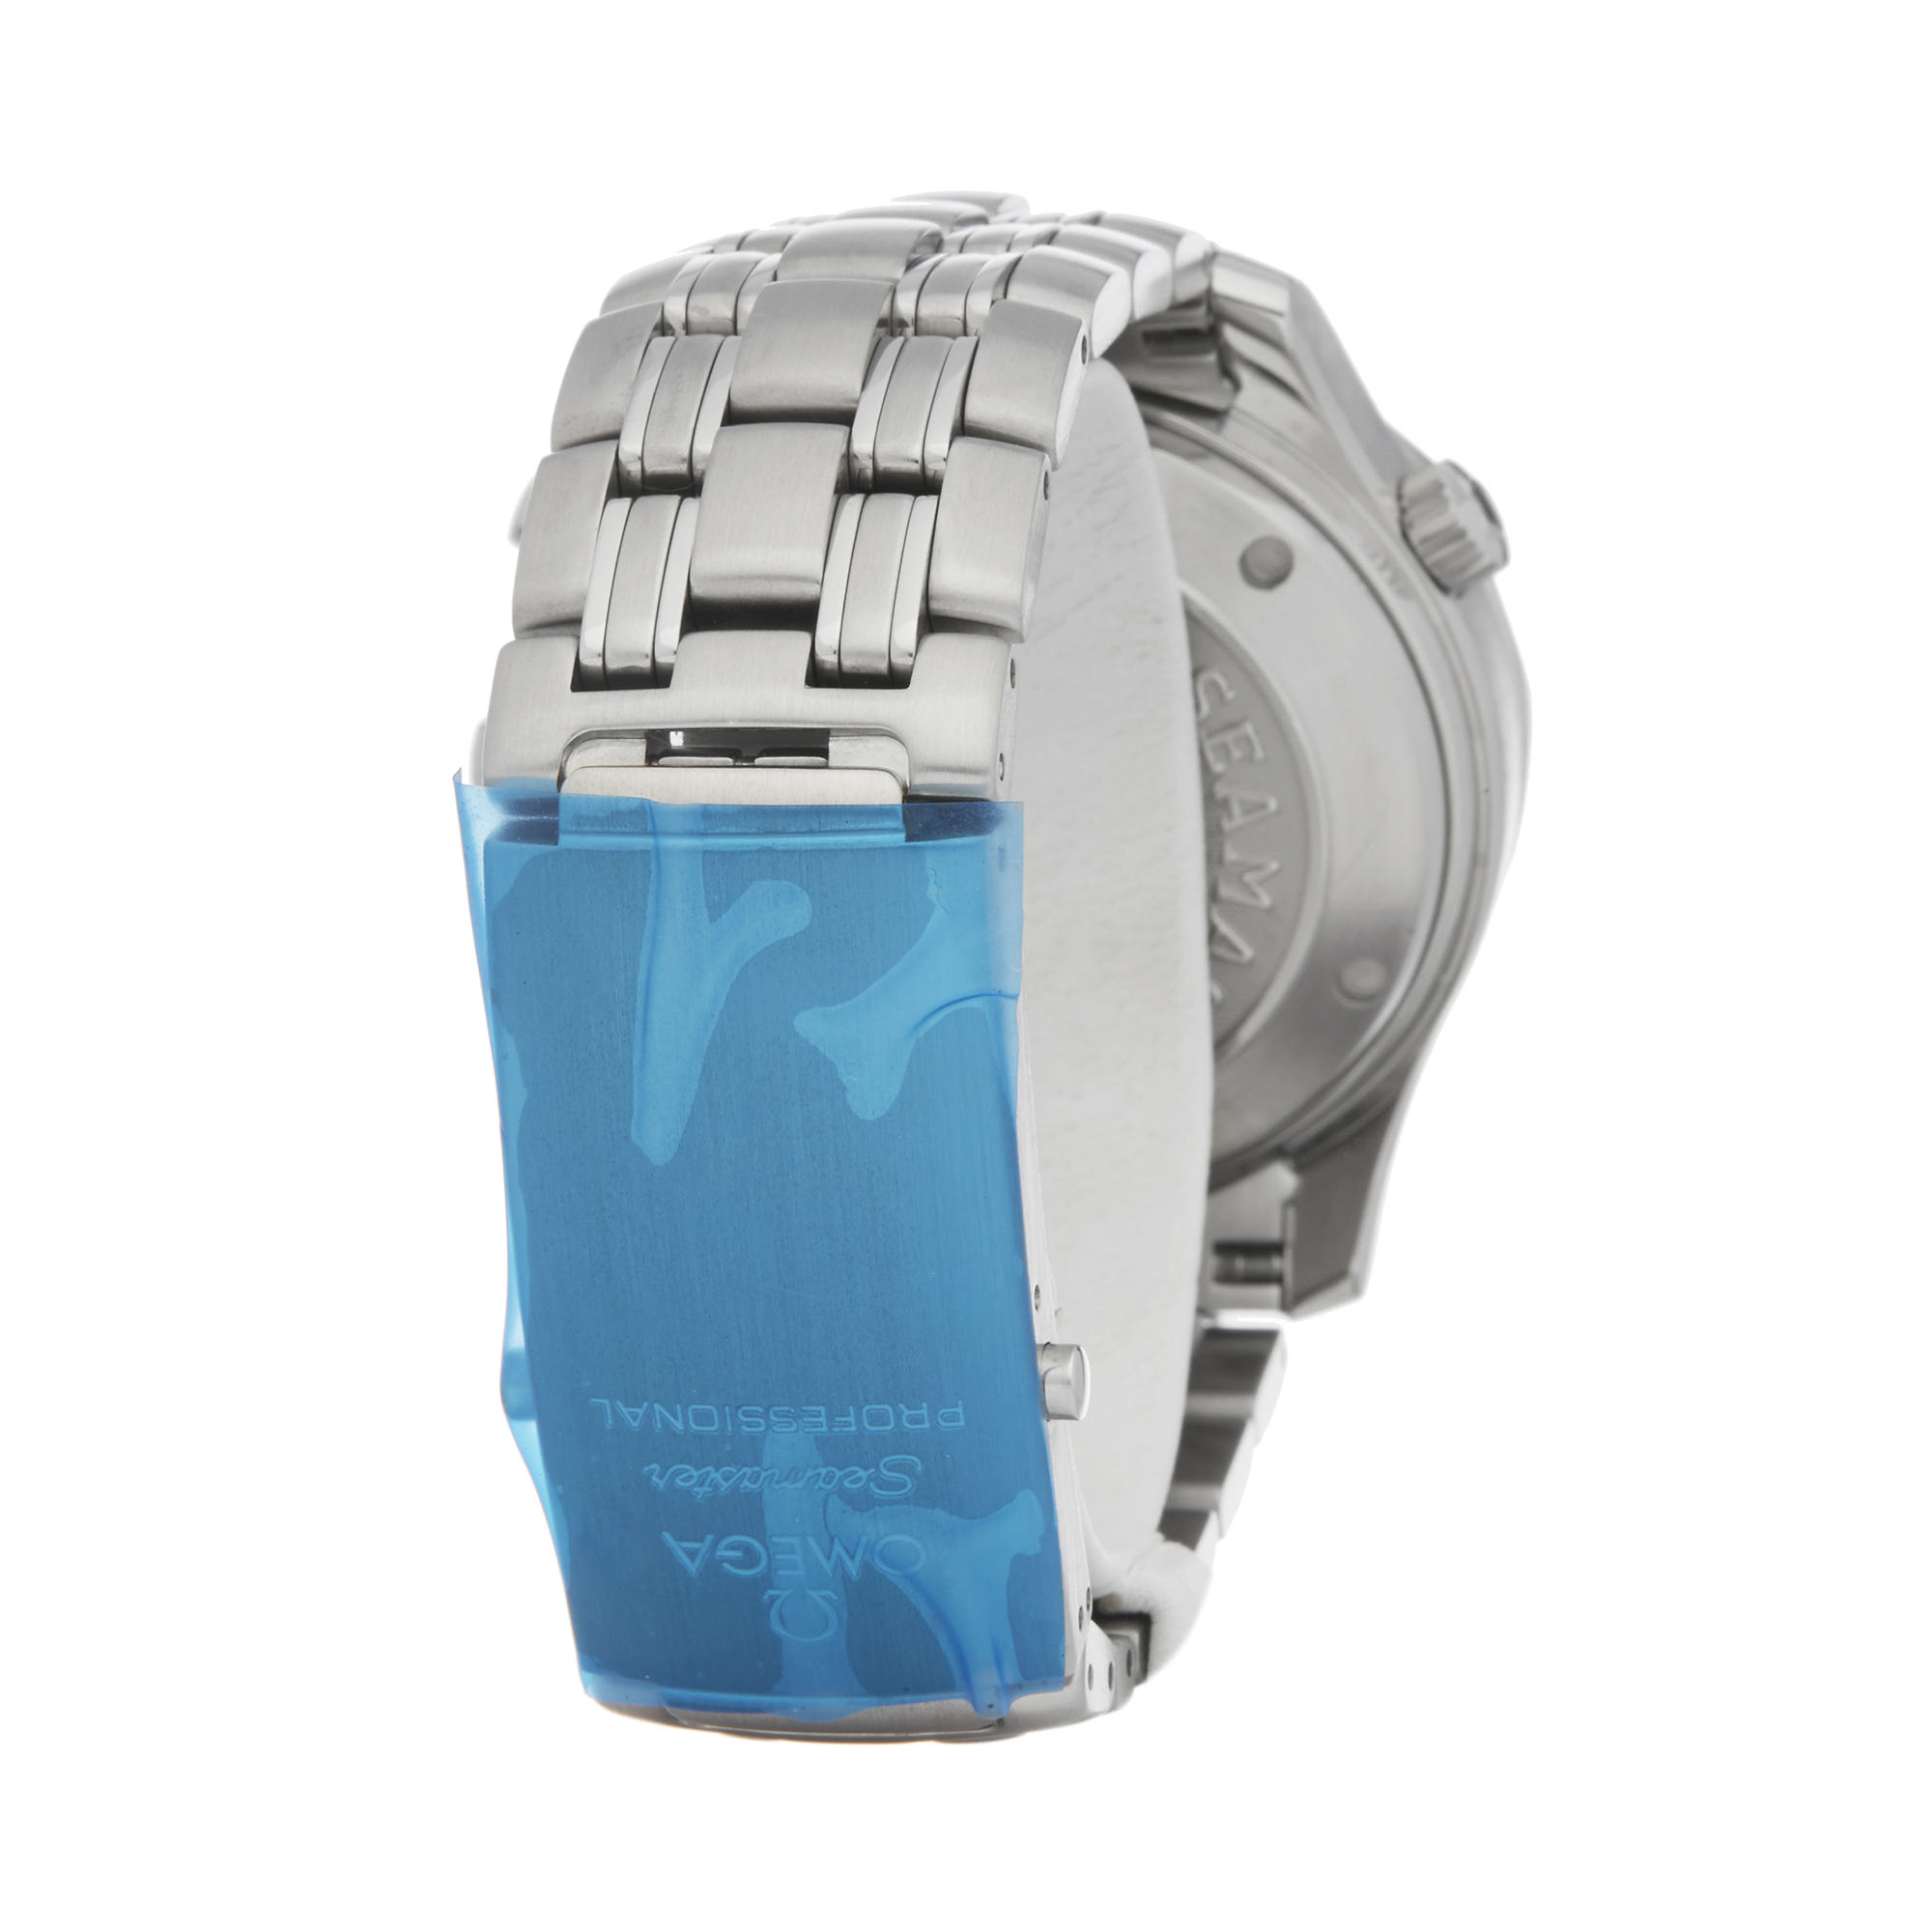 Omega Seamaster 0 213.30.42.40.01.001 Men Stainless Steel Chronograph Watch - Image 6 of 9